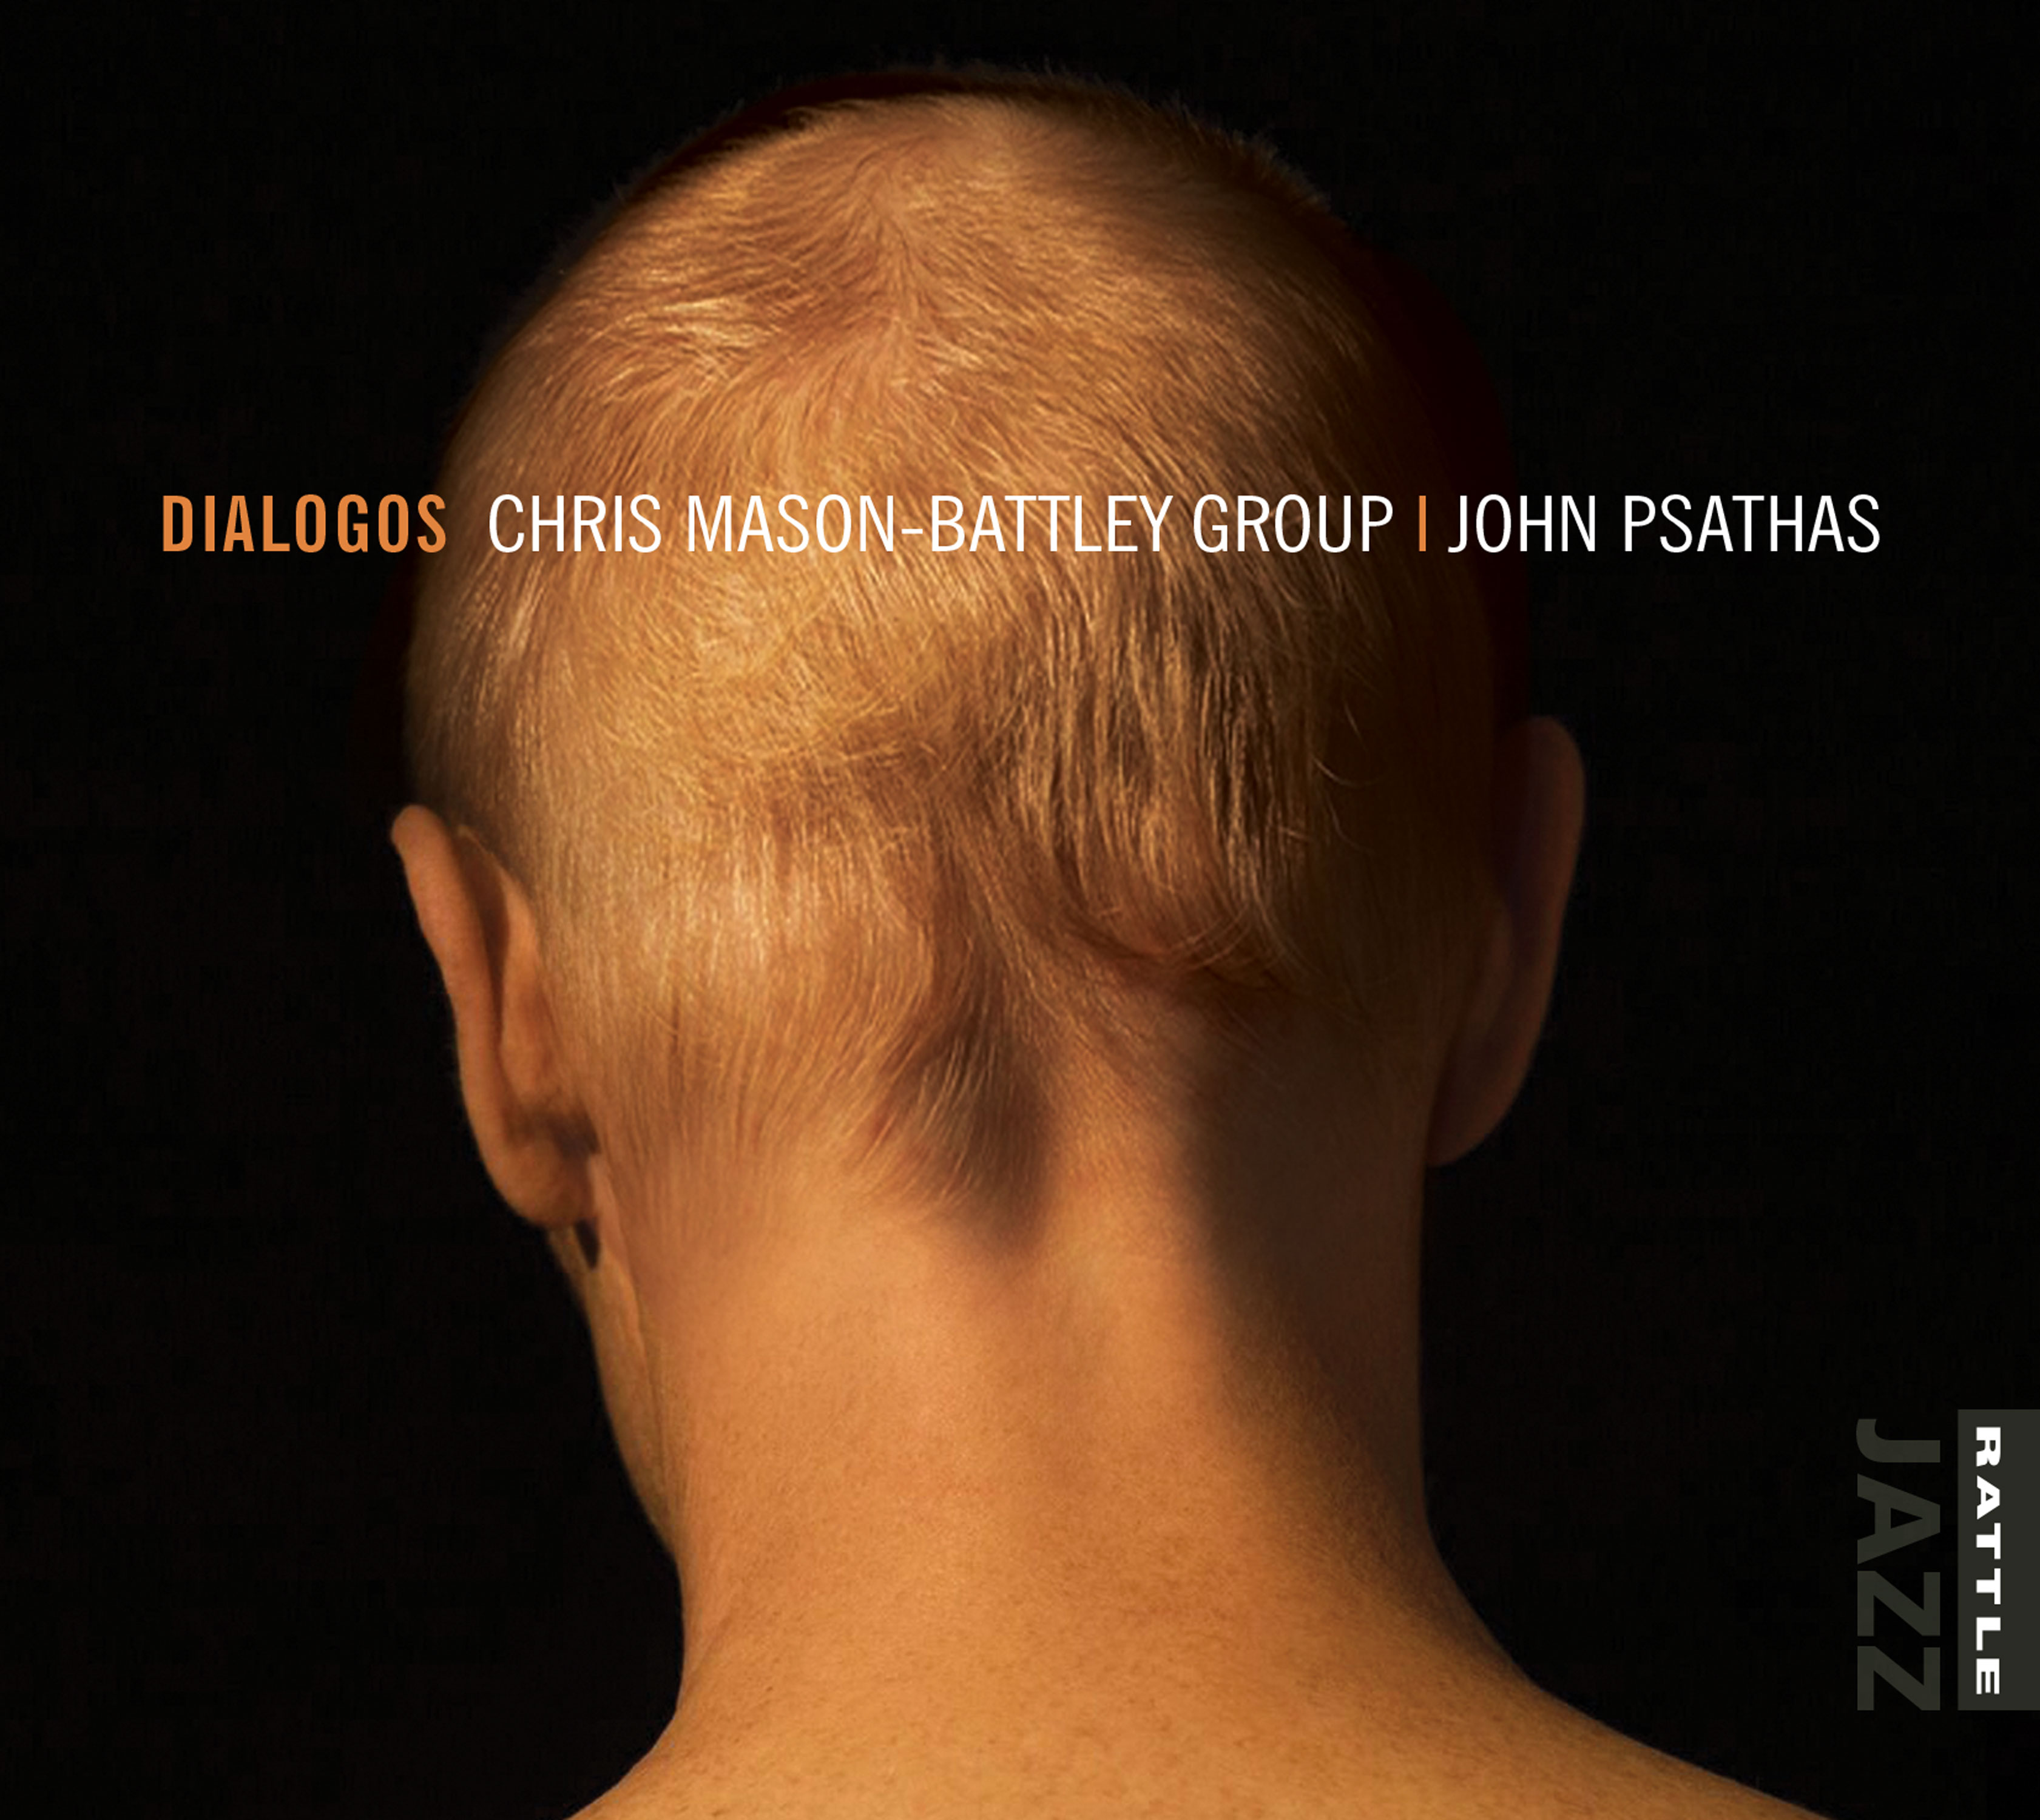 Chris Mason-Battley Group, John Psathas | Dialogos - downloadable MP3 ALBUM